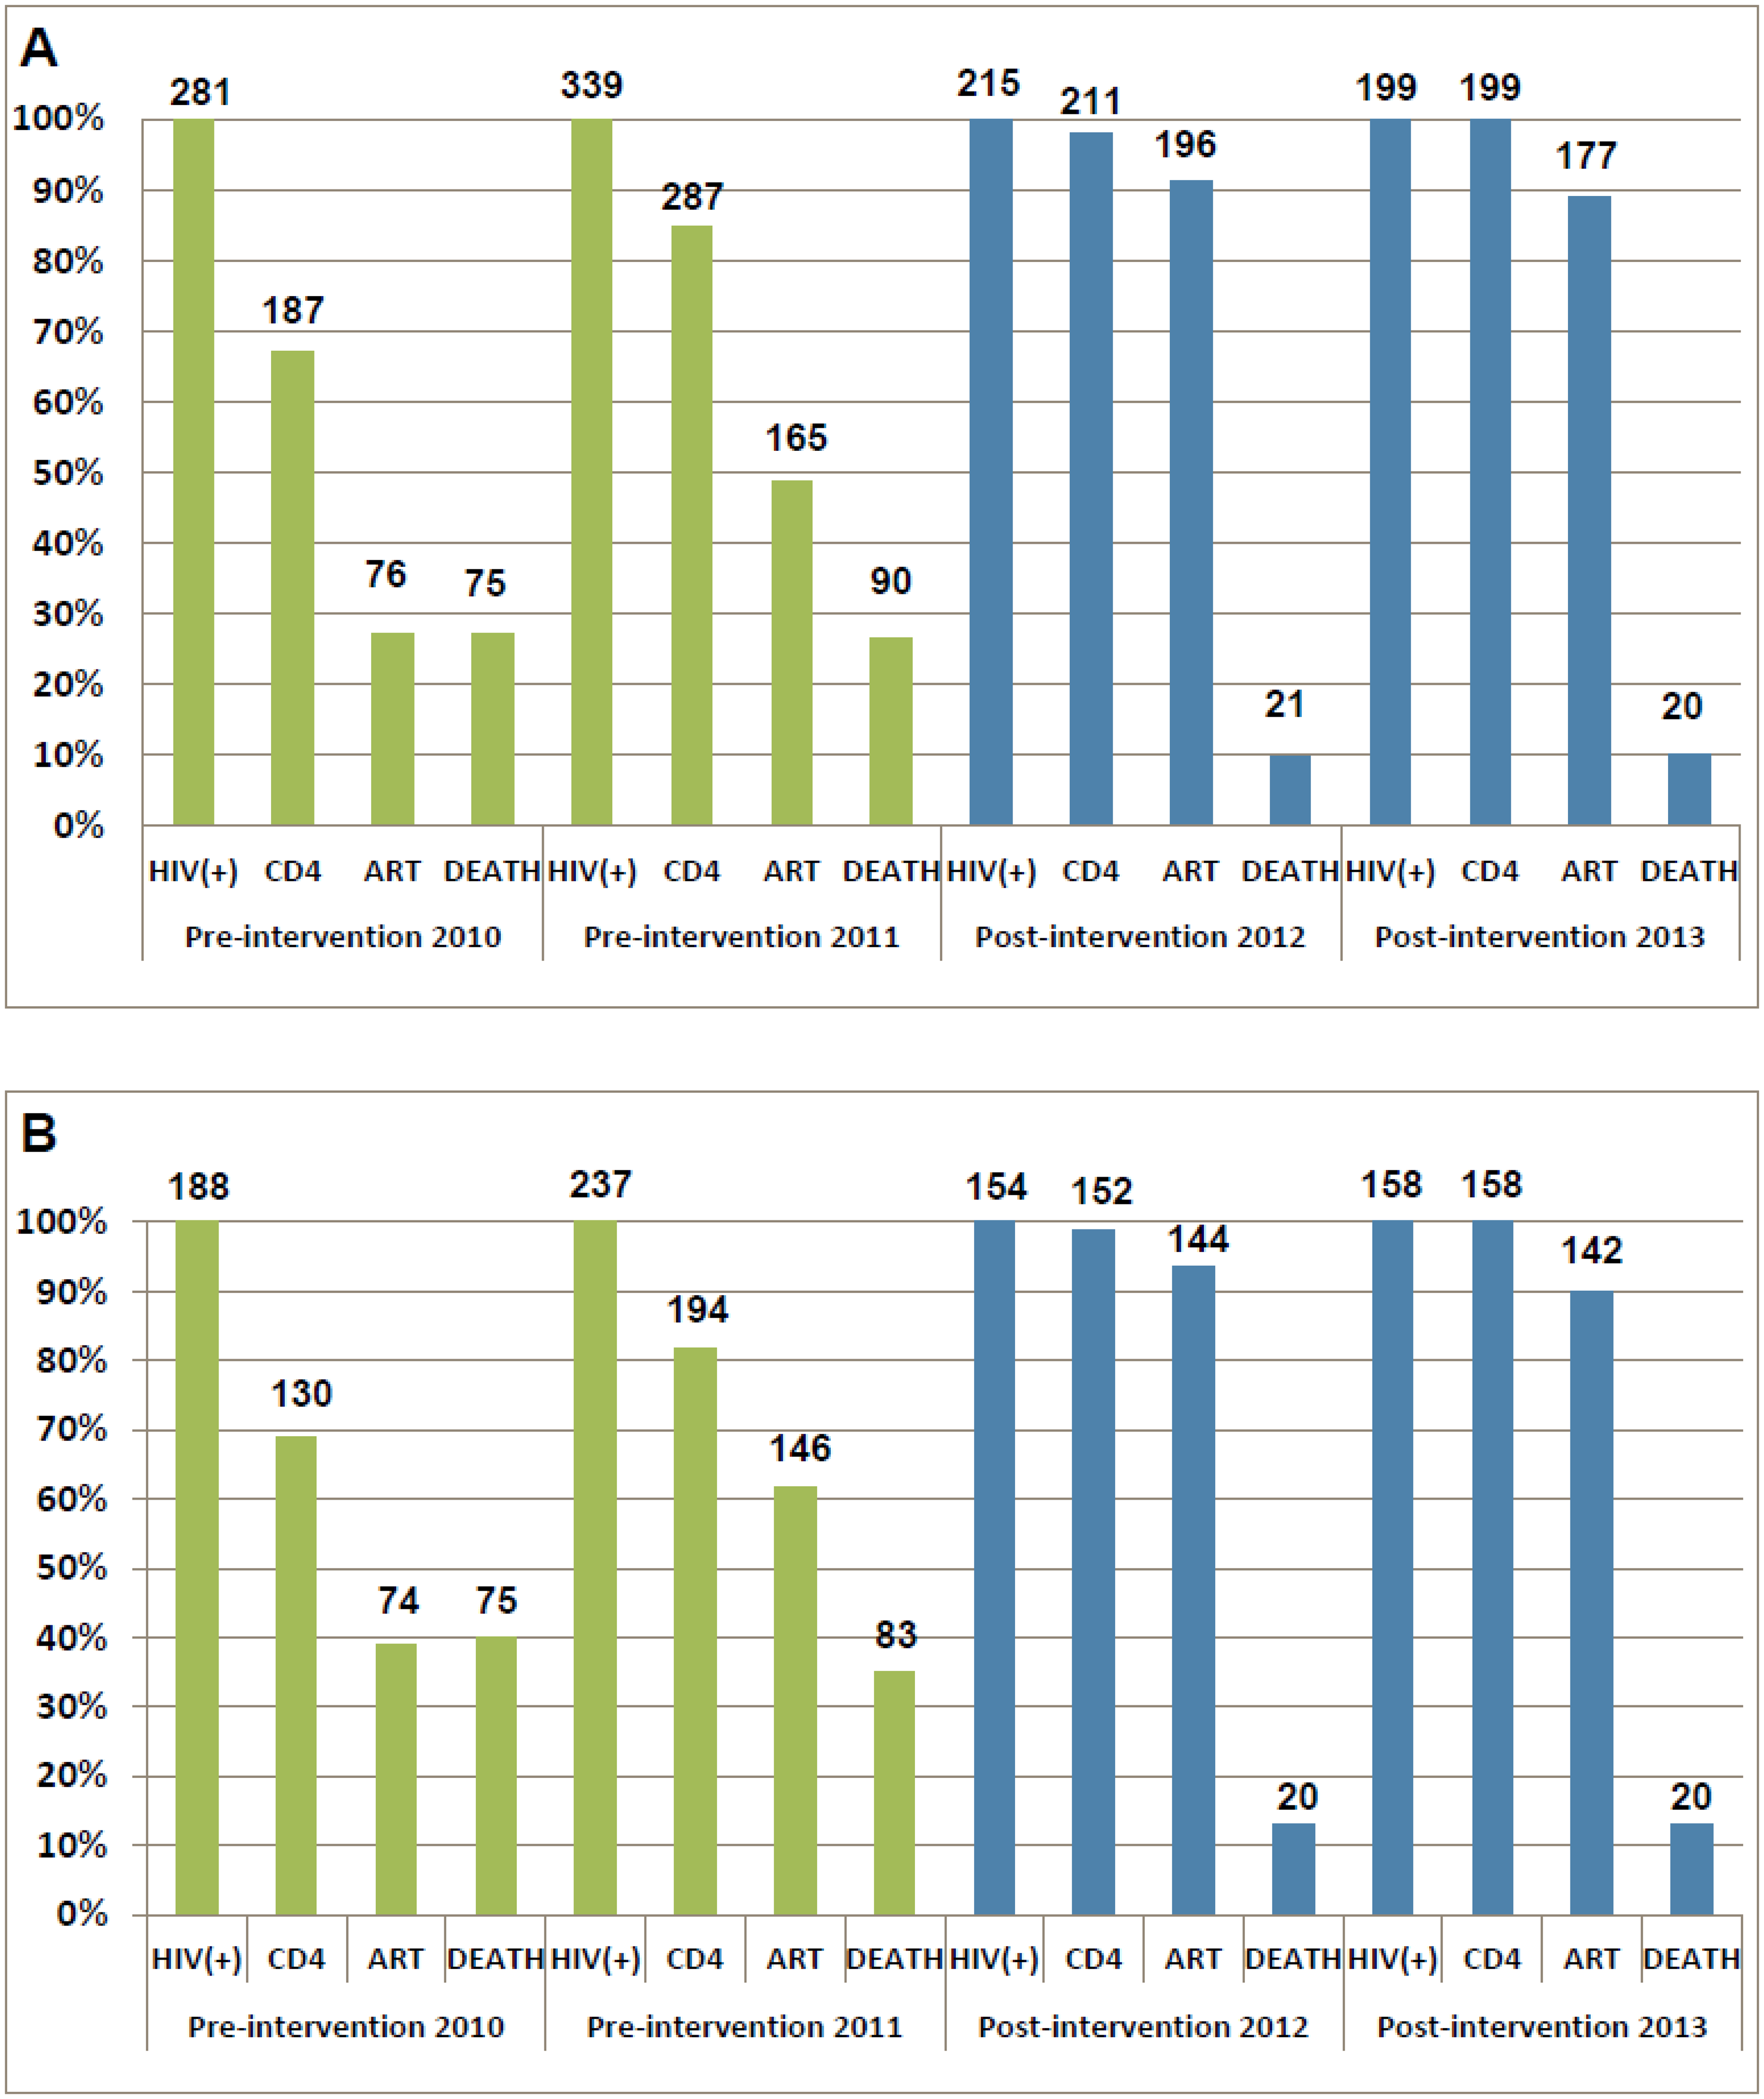 Cascade of confirmed HIV diagnosis, CD4 testing, ART initiation, and mortality during the pre-intervention 2010, pre-intervention 2011, post-intervention 2012, and post-intervention 2013 phases in Guangxi, China.